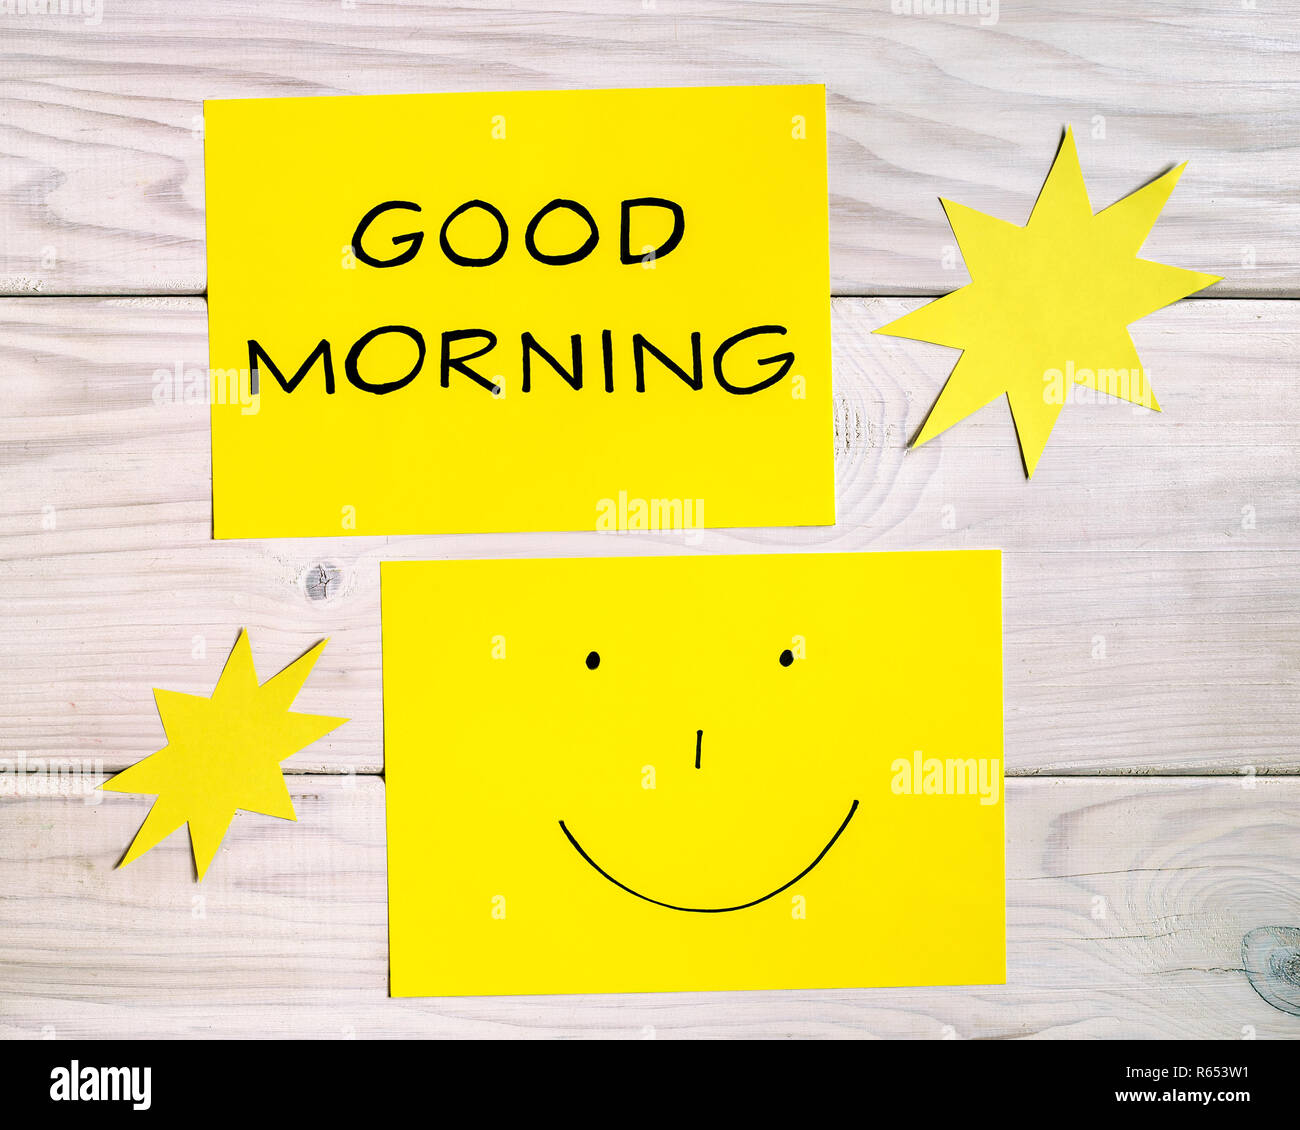 Text Good Morning And Smiley Face With Sun Shapes On Wooden Table